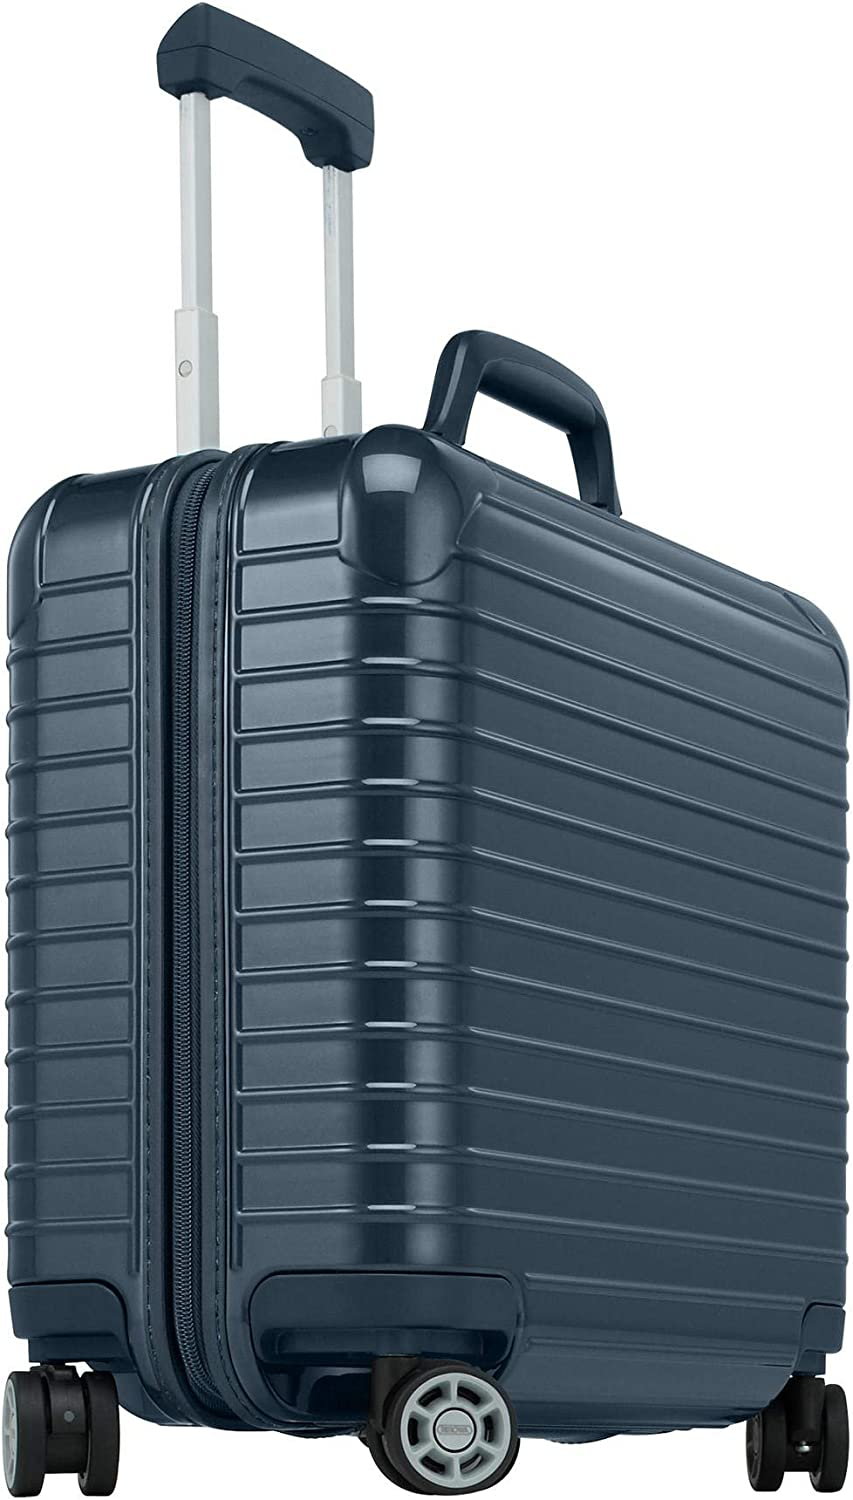 Rimowa Salsa Deluxe Business Multiwheel 830.40.12.4 yachtingblue